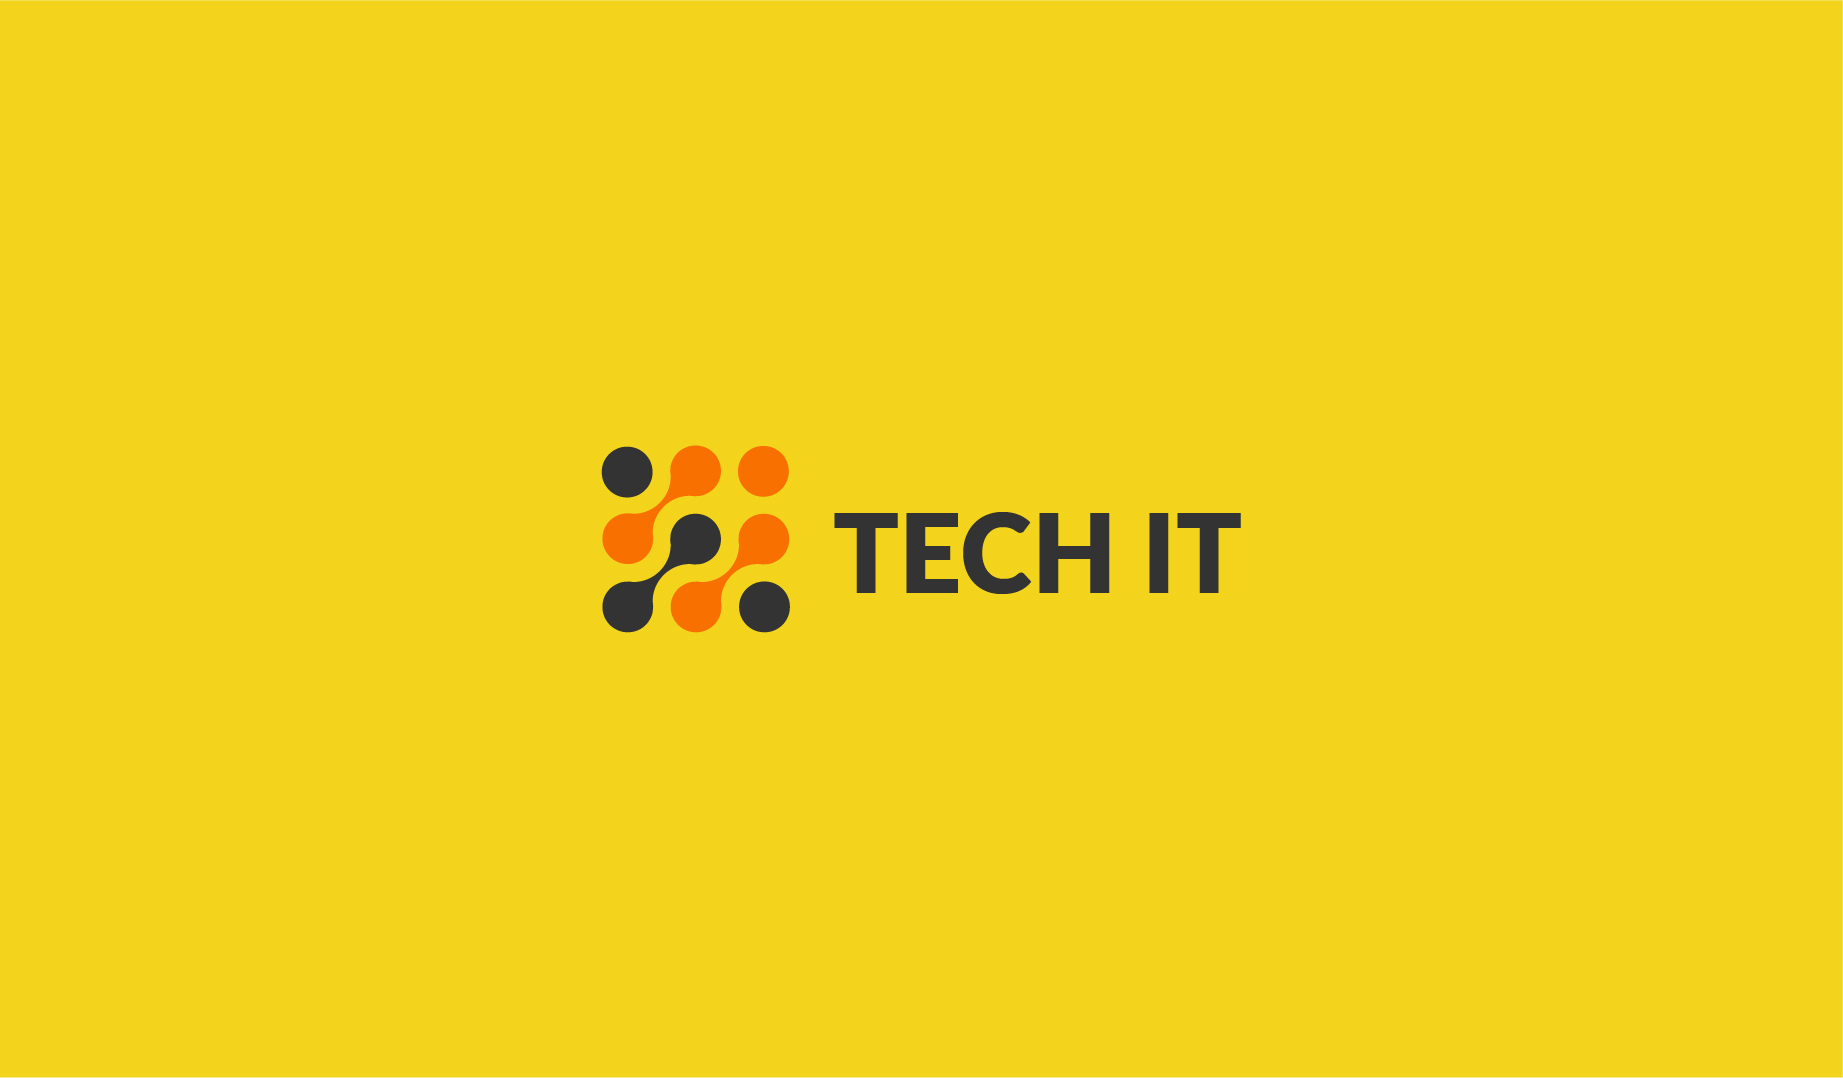 logo design service for Tech It